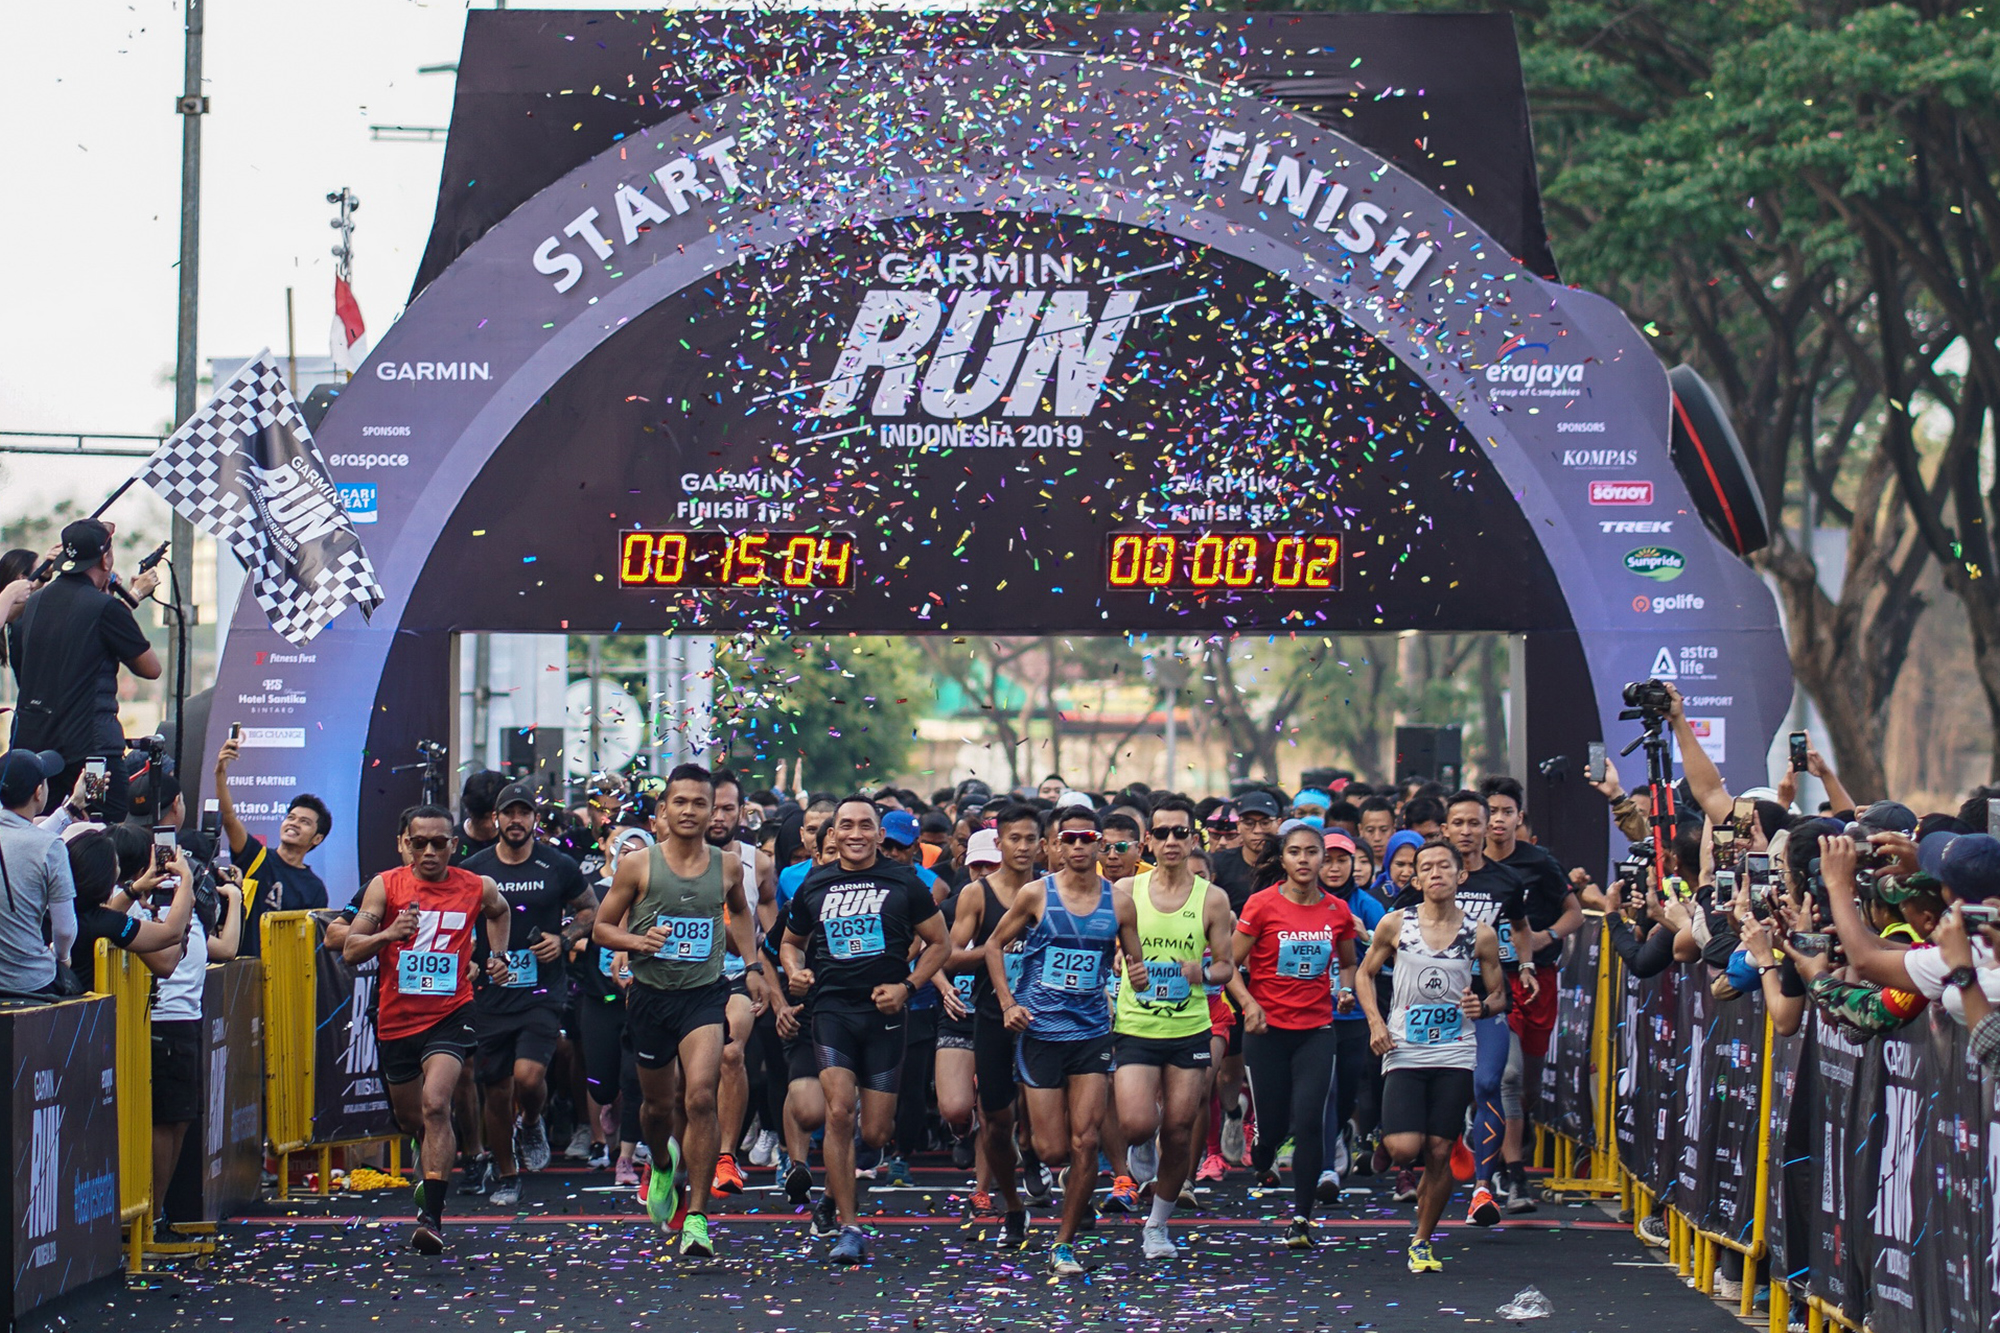 GARMIN RUN INDONESIA 2019